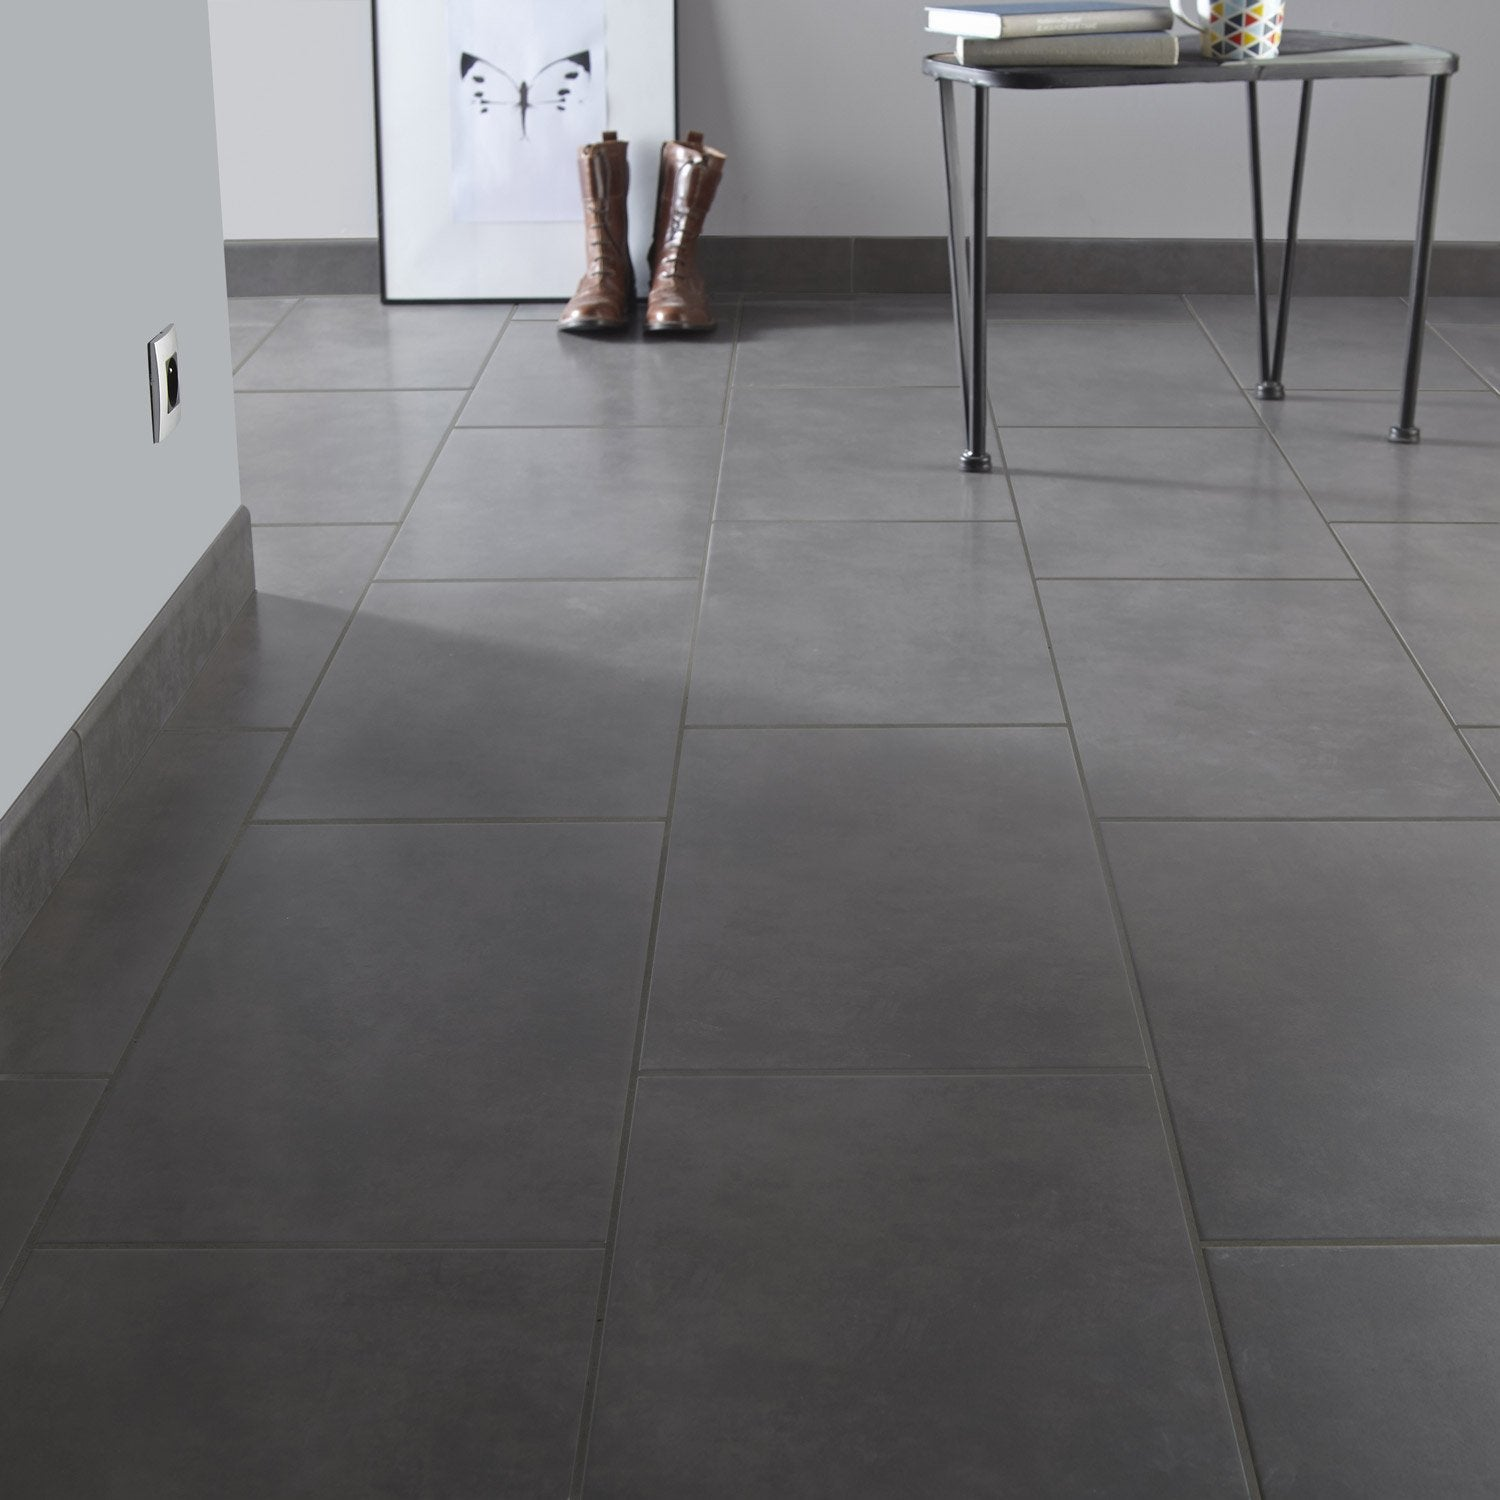 Carrelage sol et mur anthracite effet b ton blackpool for Pose plinthe carrelage angle saillant